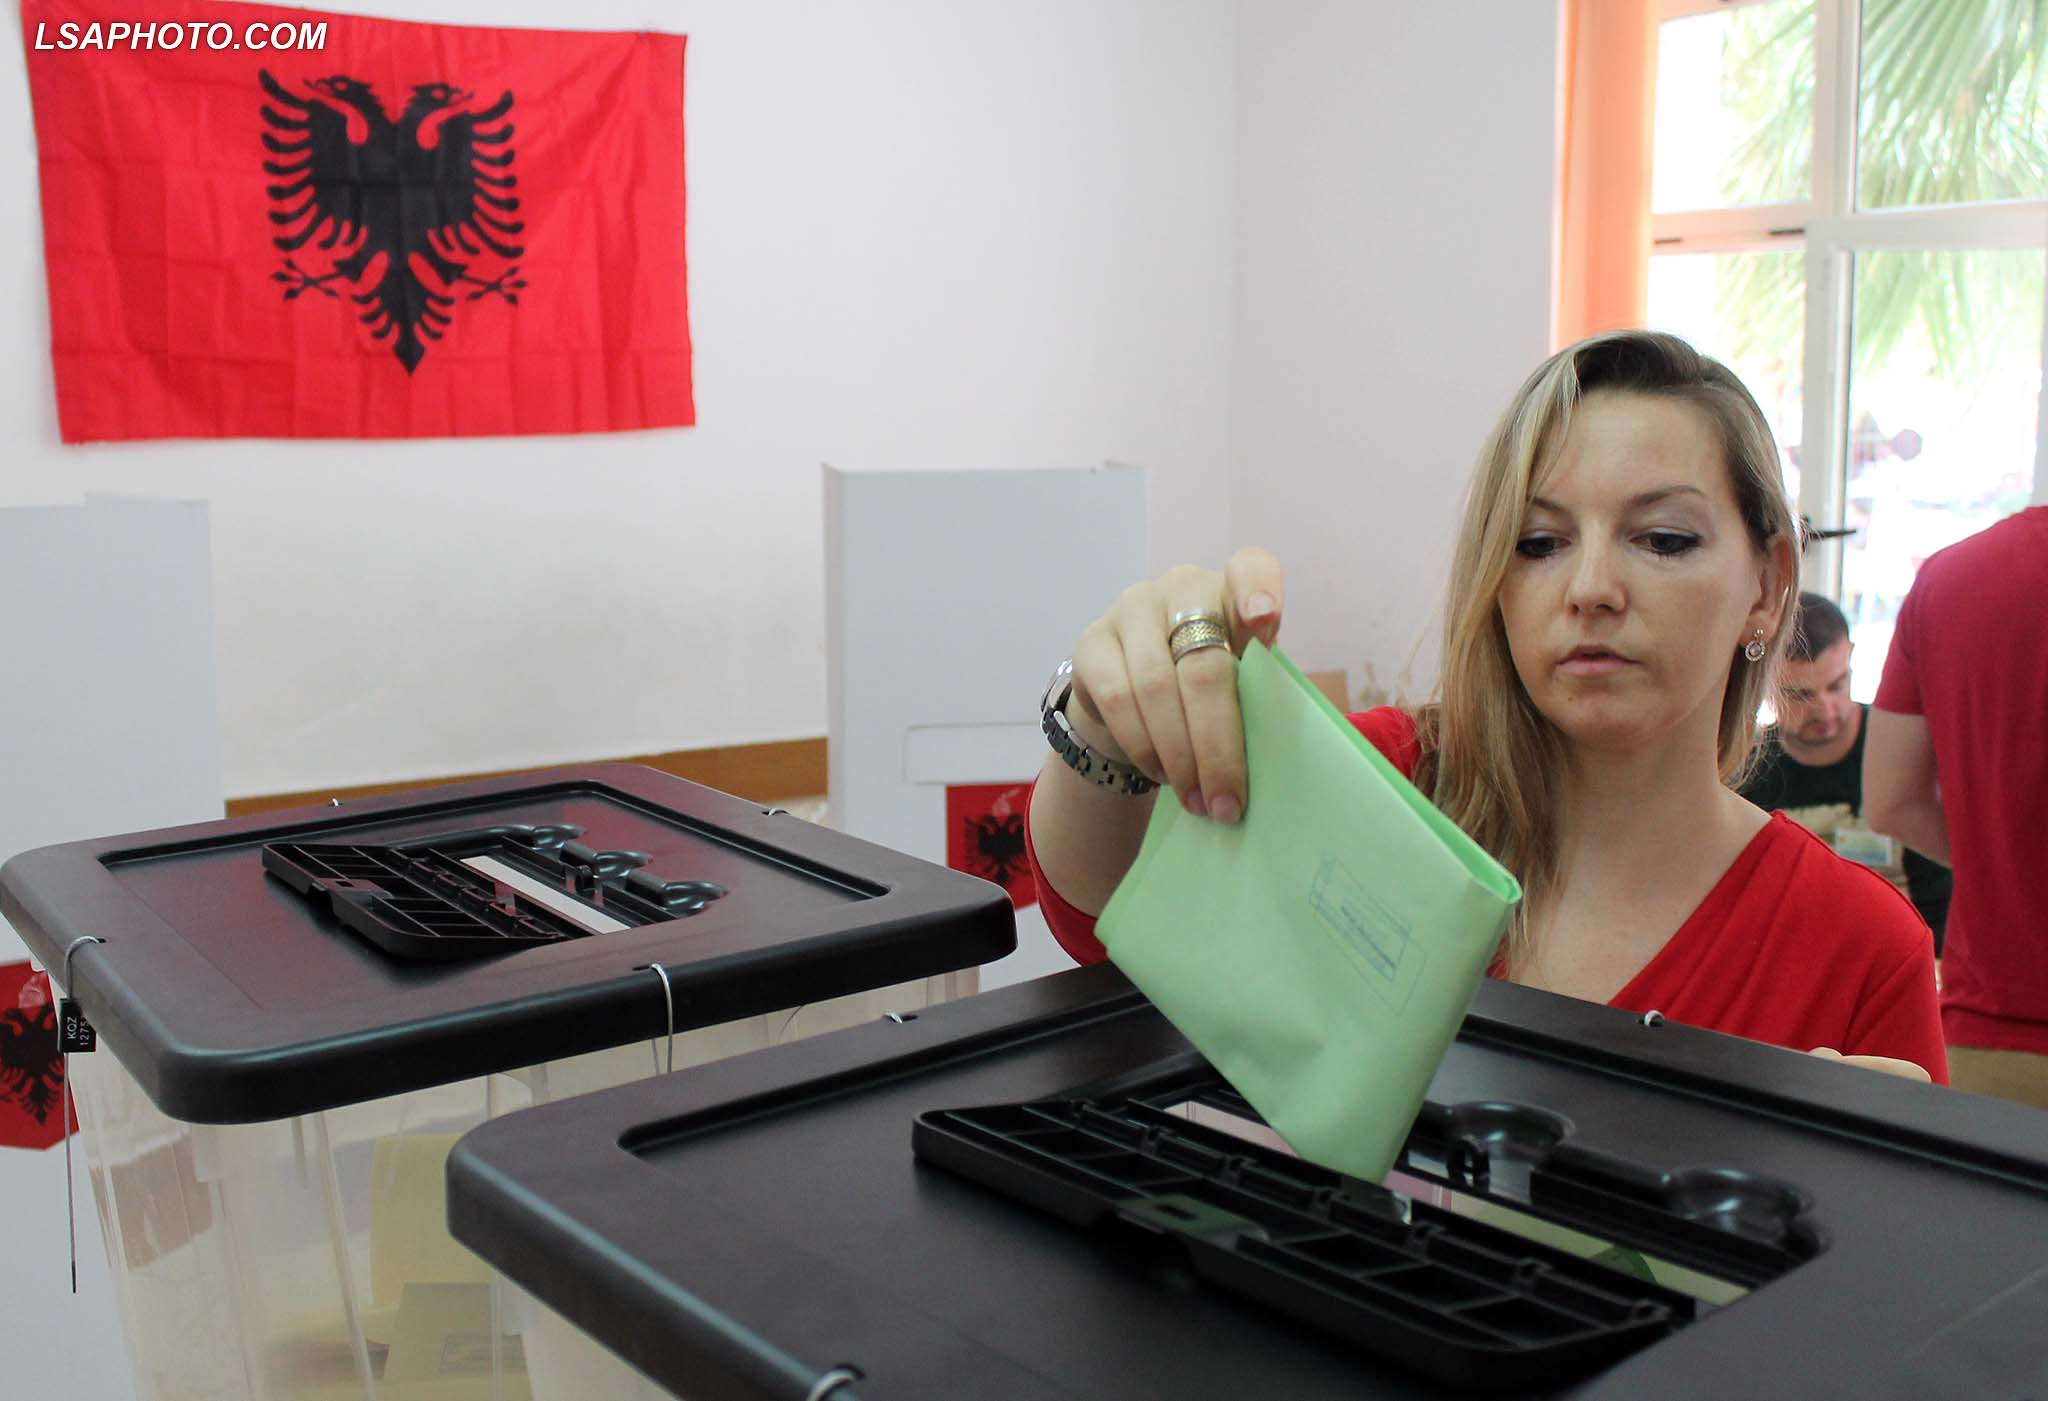 Albania: CEC decides on 16 parties and one commission for April 25 Elections